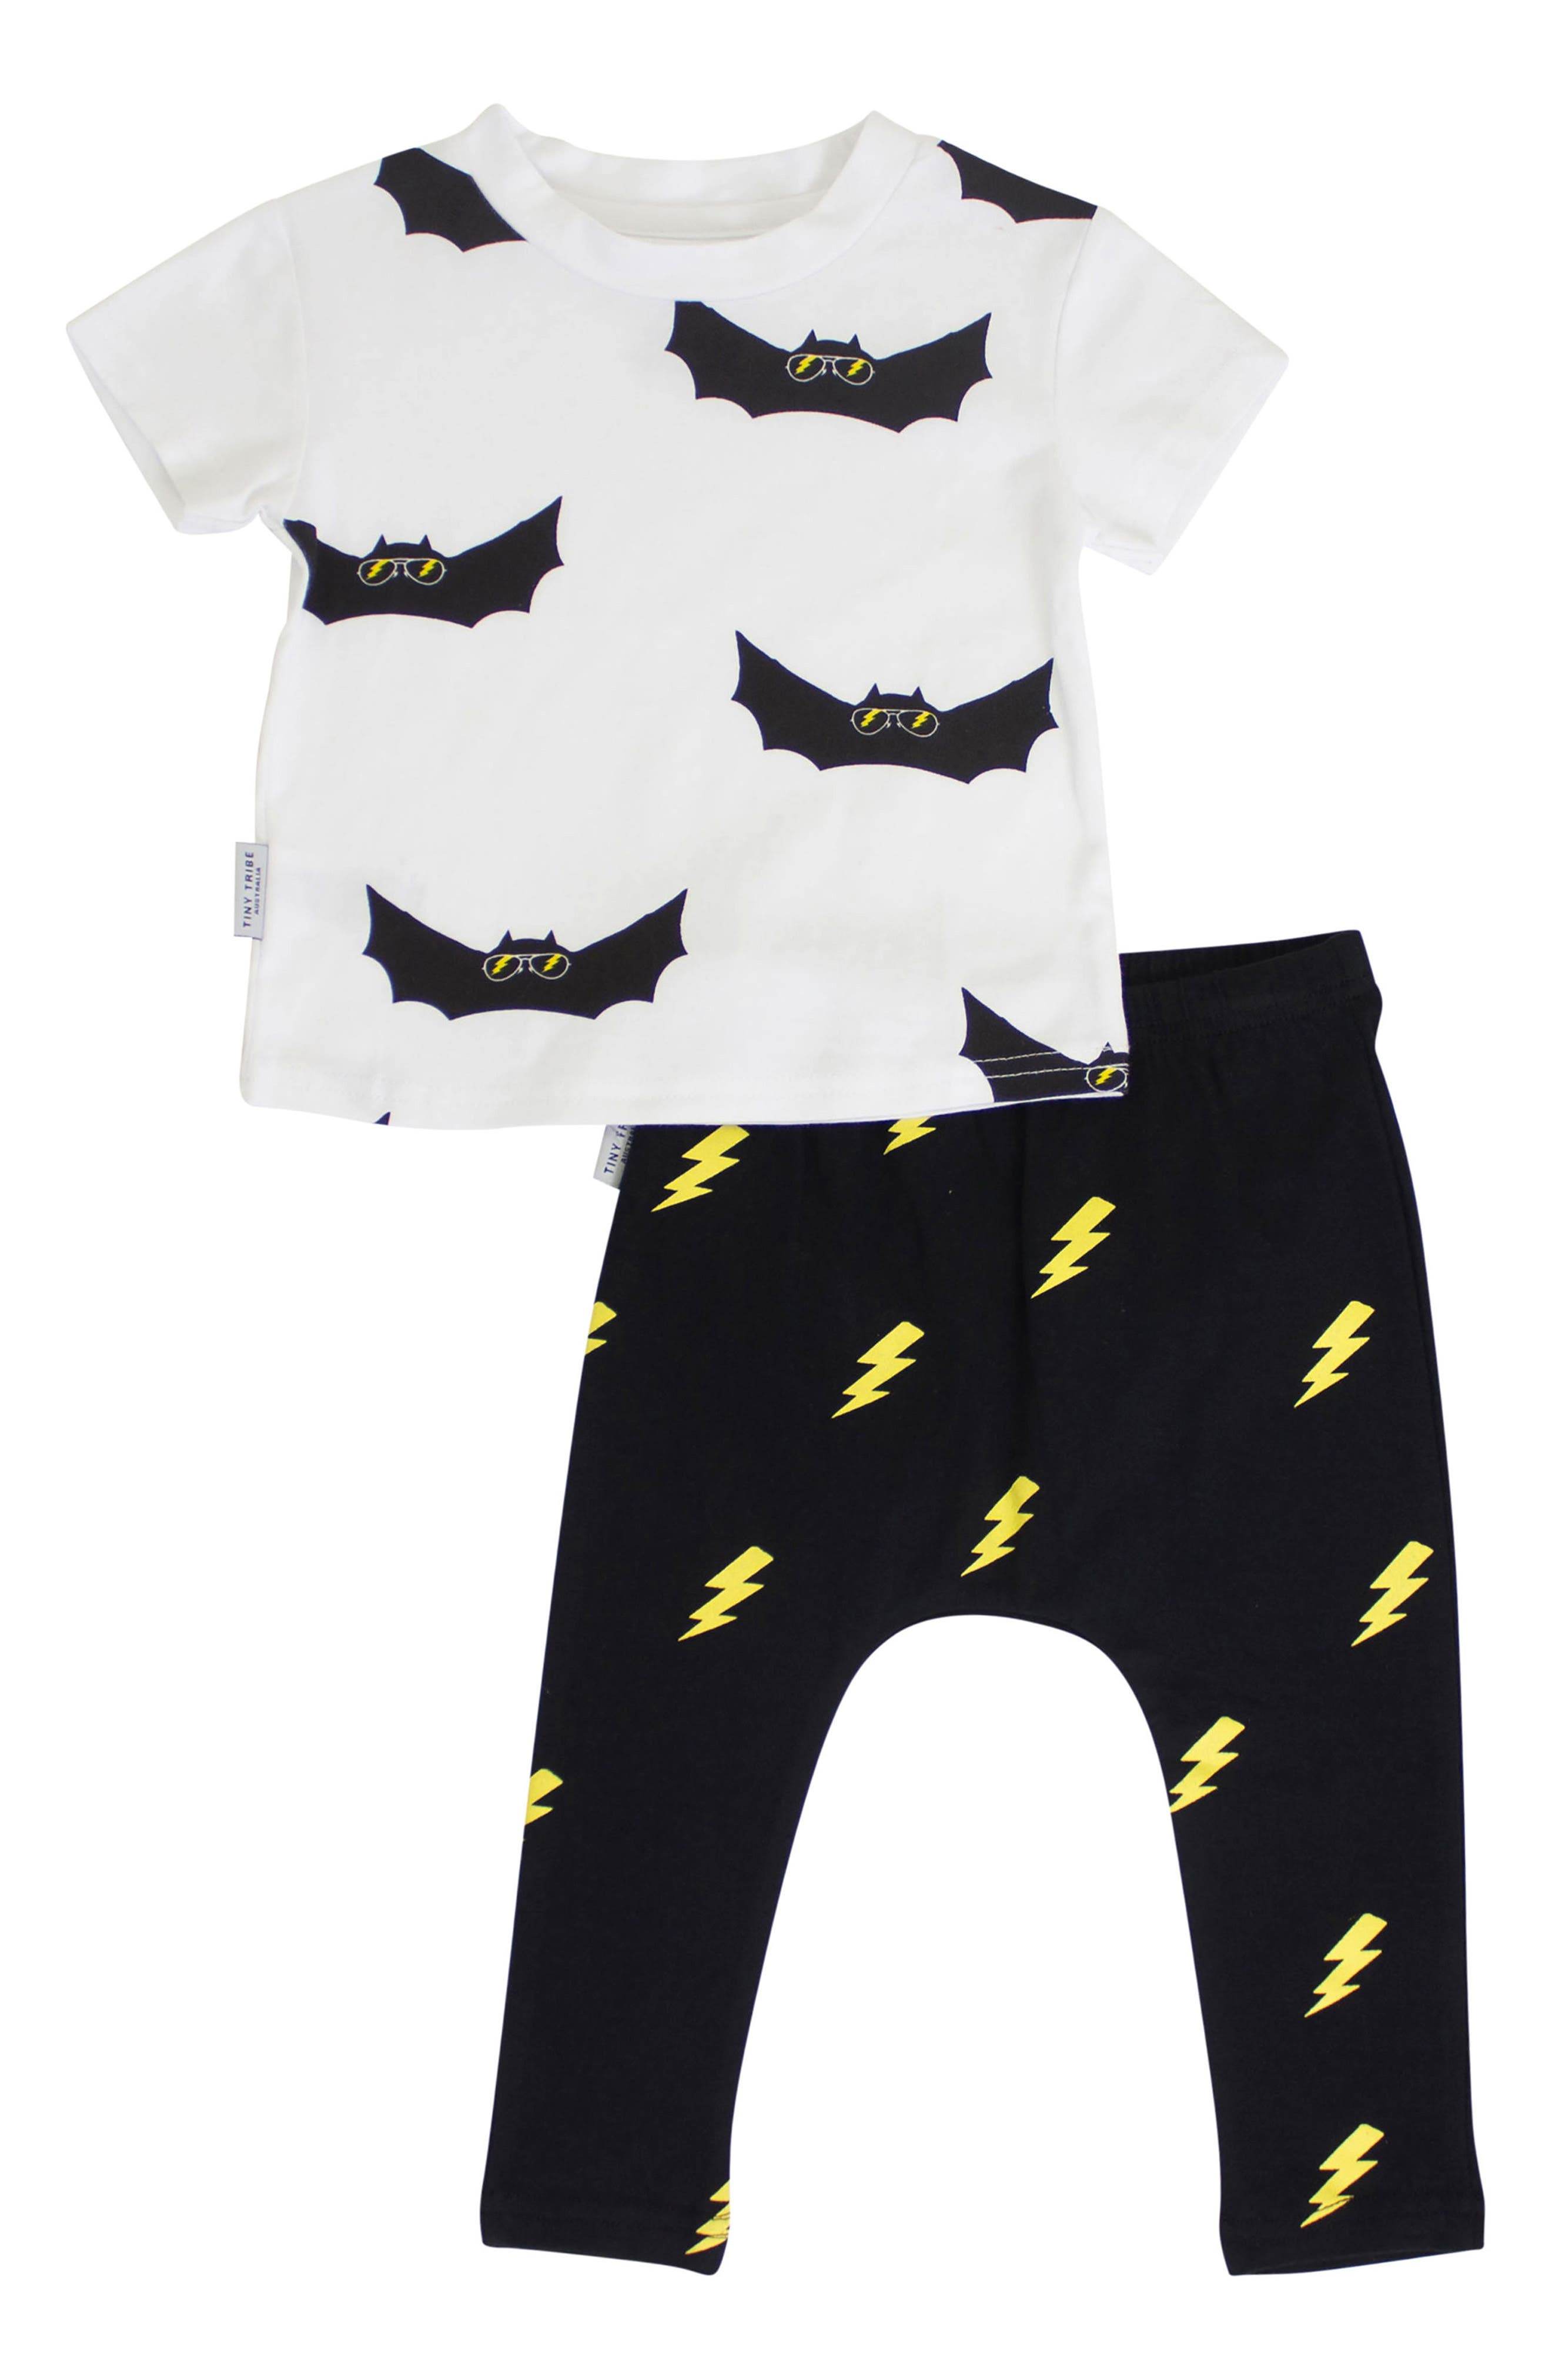 Bat Shirt & Leggings Set,                         Main,                         color, White/ Black